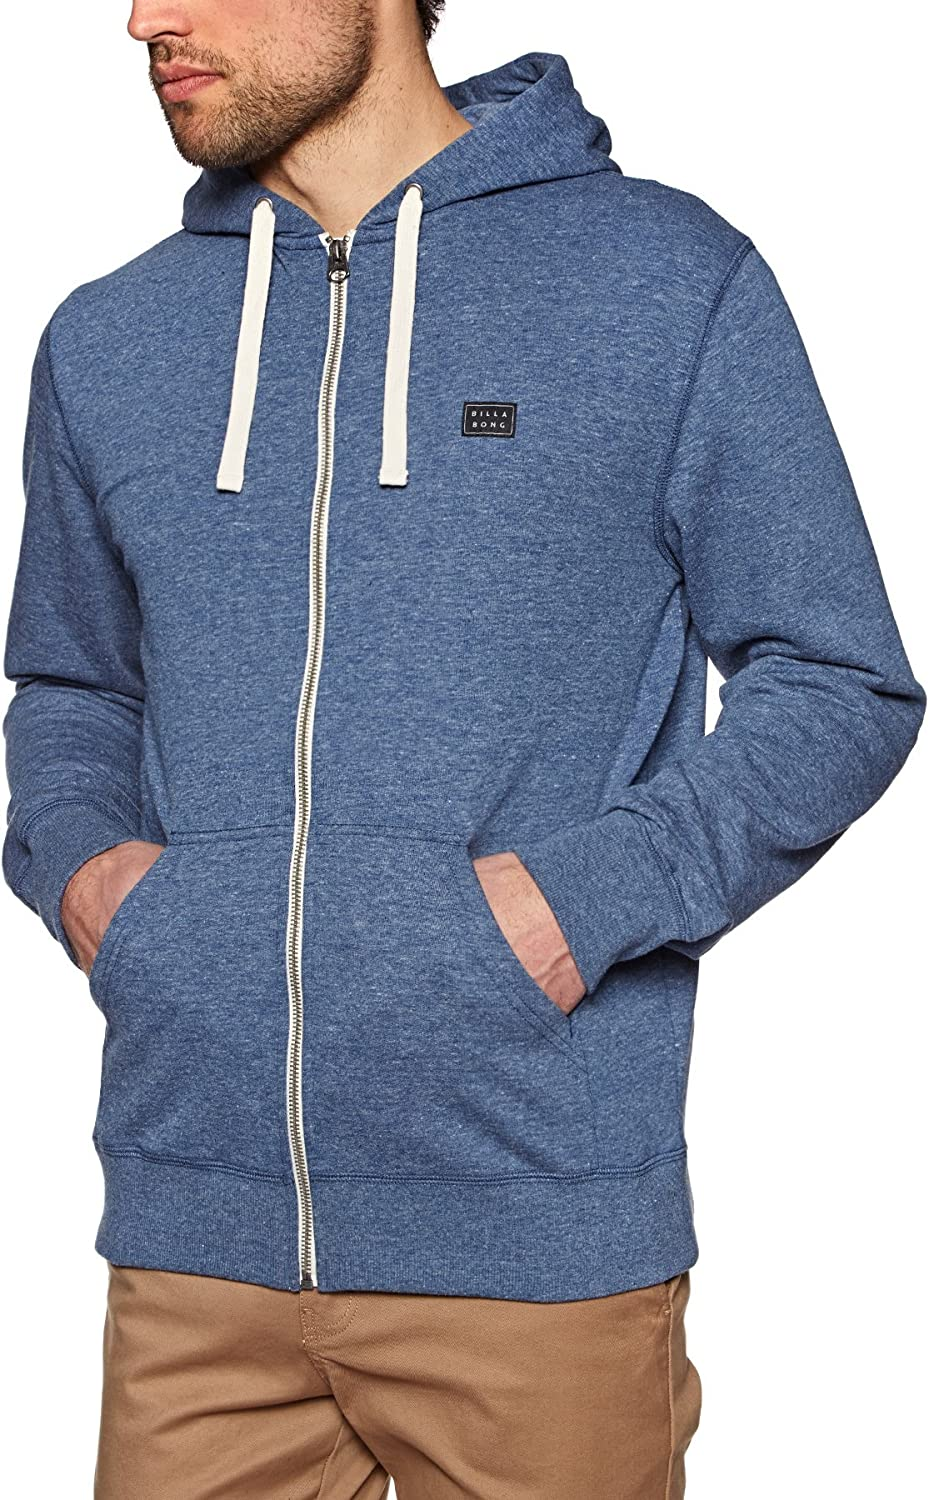 TALLA XS. G.S.M. Europe - Billabong All Day Zip Hood Sudadera con Capucha